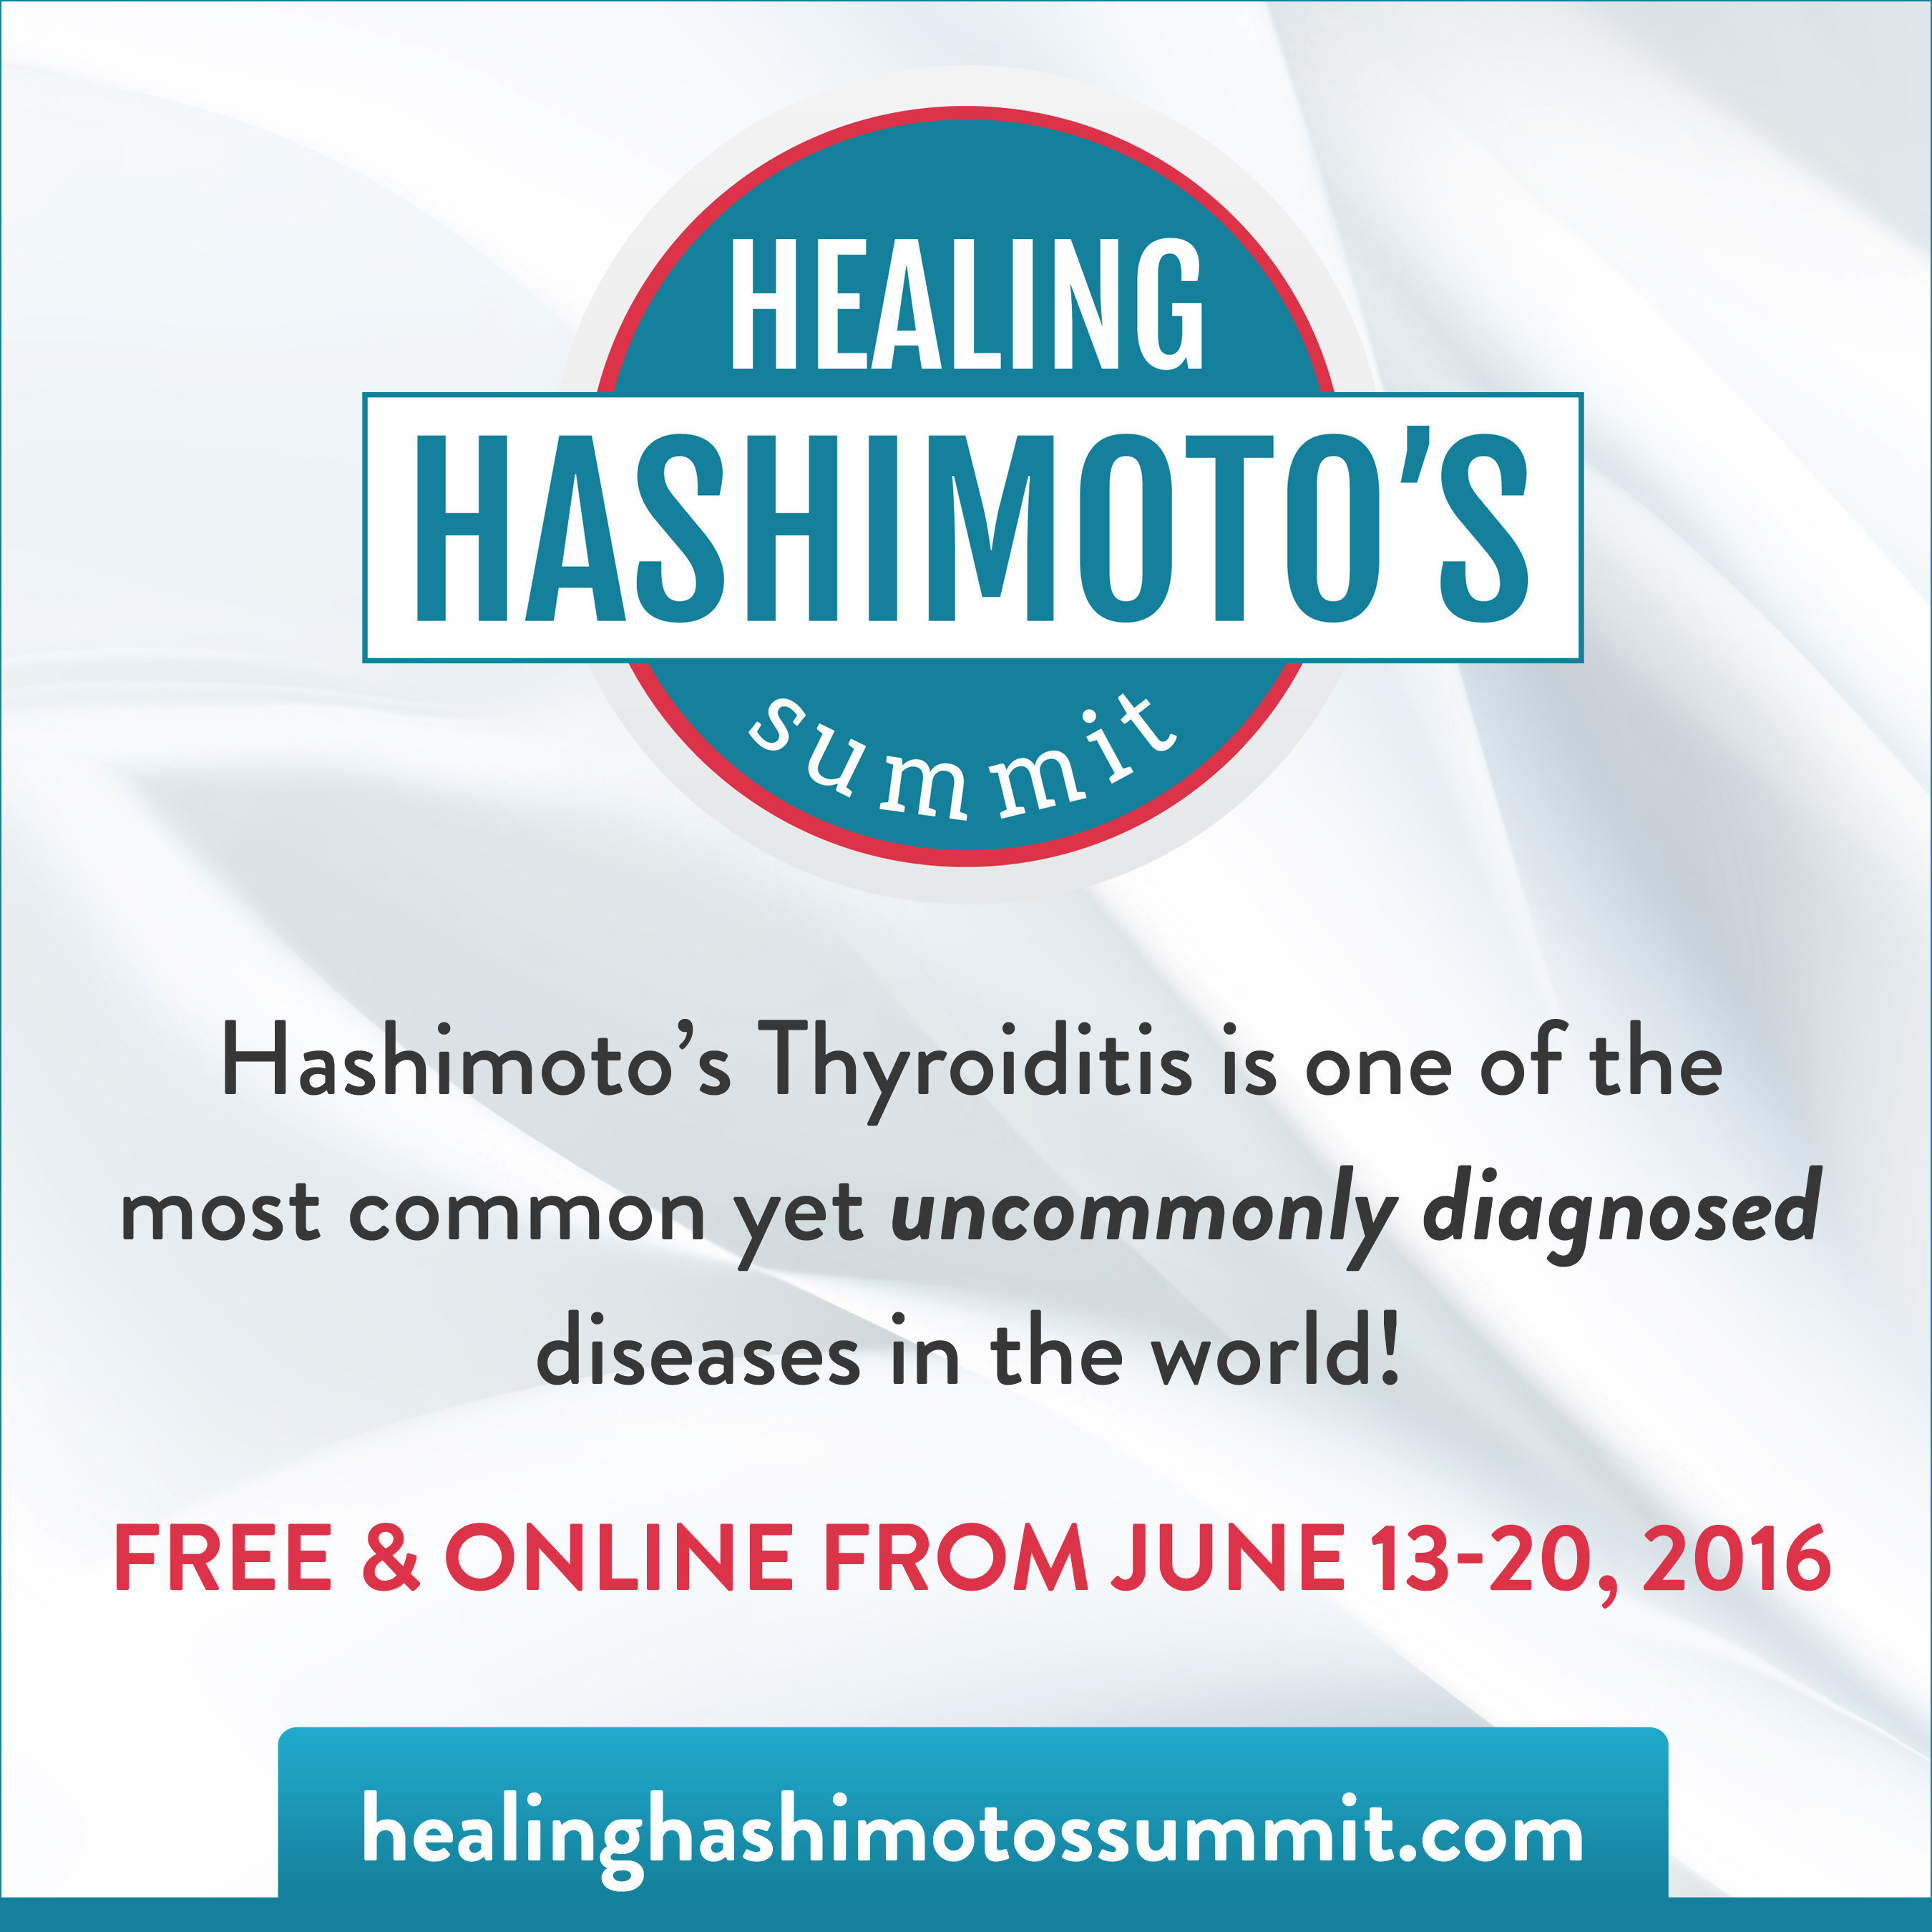 53 million Americans have autoimmune disease, an estimated 22 million of those people suffer from Hashimoto's Thyroiditis. Hashimoto's Awareness, a not-for-profit organization that drives education, advocacy, and research to support sufferers of Hashimoto's Thyroiditis (chronic lymphocytic thyroiditis) has announced its 2016 Healing Hashimoto's Summit will take place free and online June 13-10. We want to thank our sponsors, Cyrex Laboratories, Dr. Datis Kharrazian, and Thrive Market.